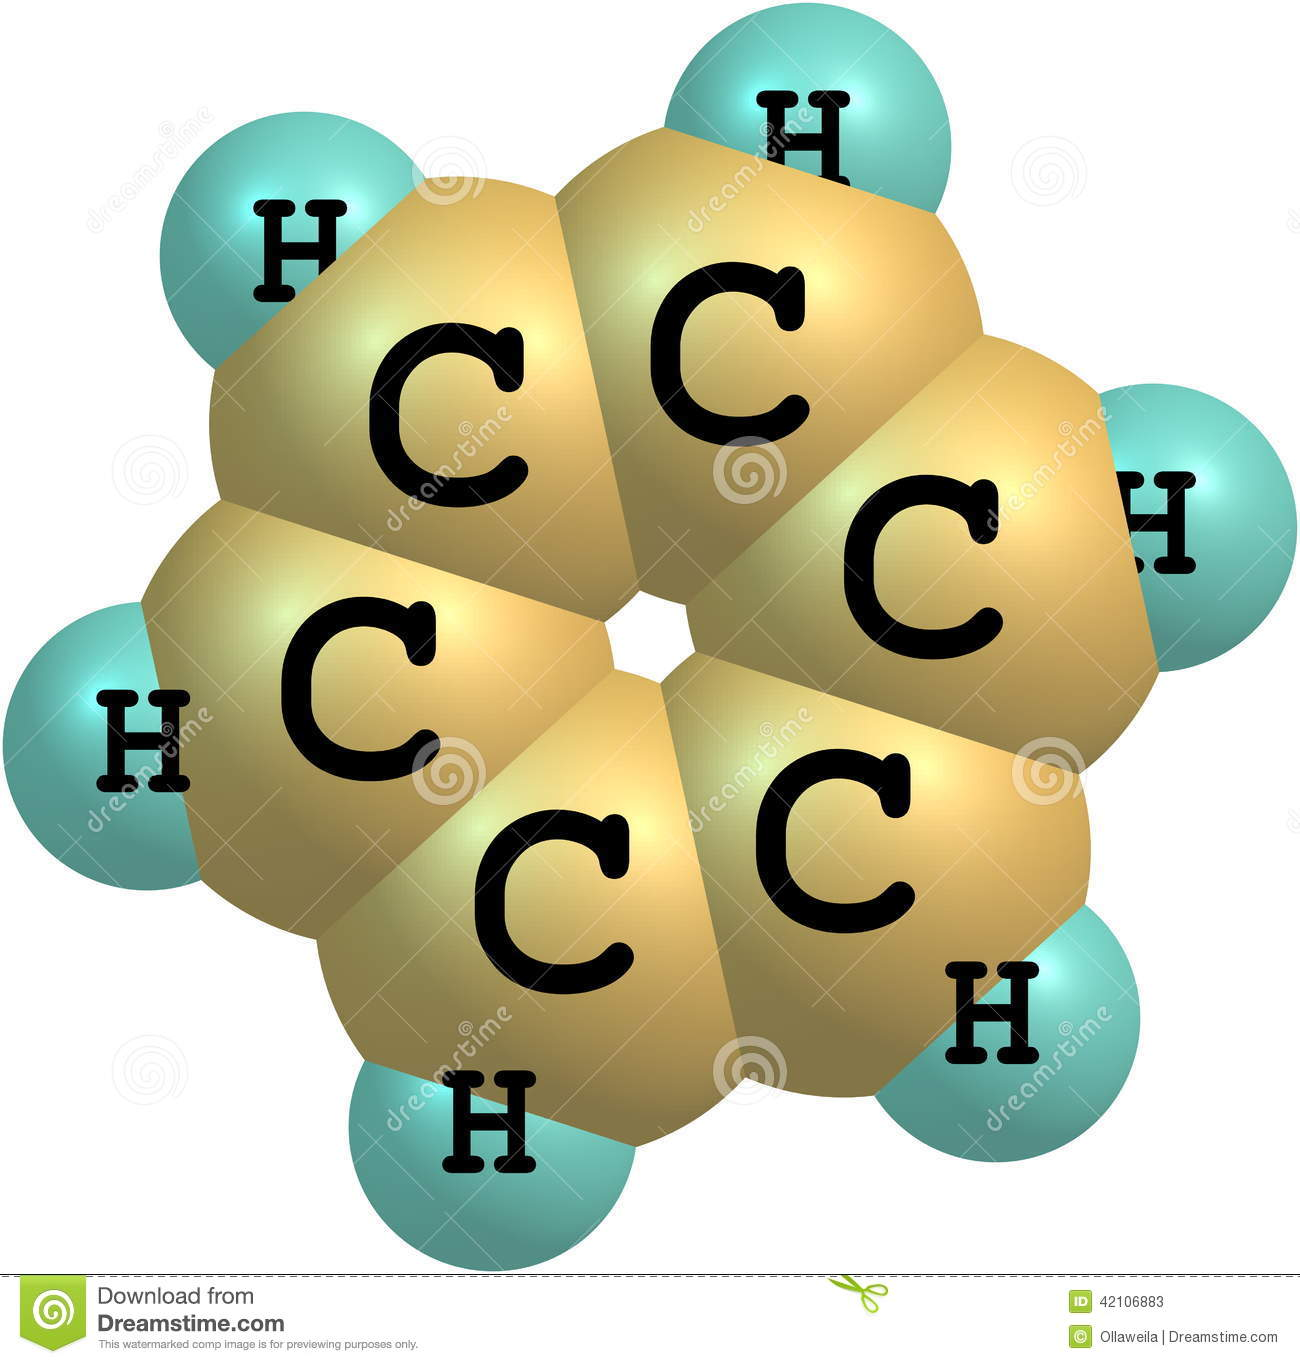 Carbon Atom Structure Bbc Gcse Bitesize Protons Neutrons And Of Oxygen Unlabelled Http Www Micromountain Com Sci Diagrams Download